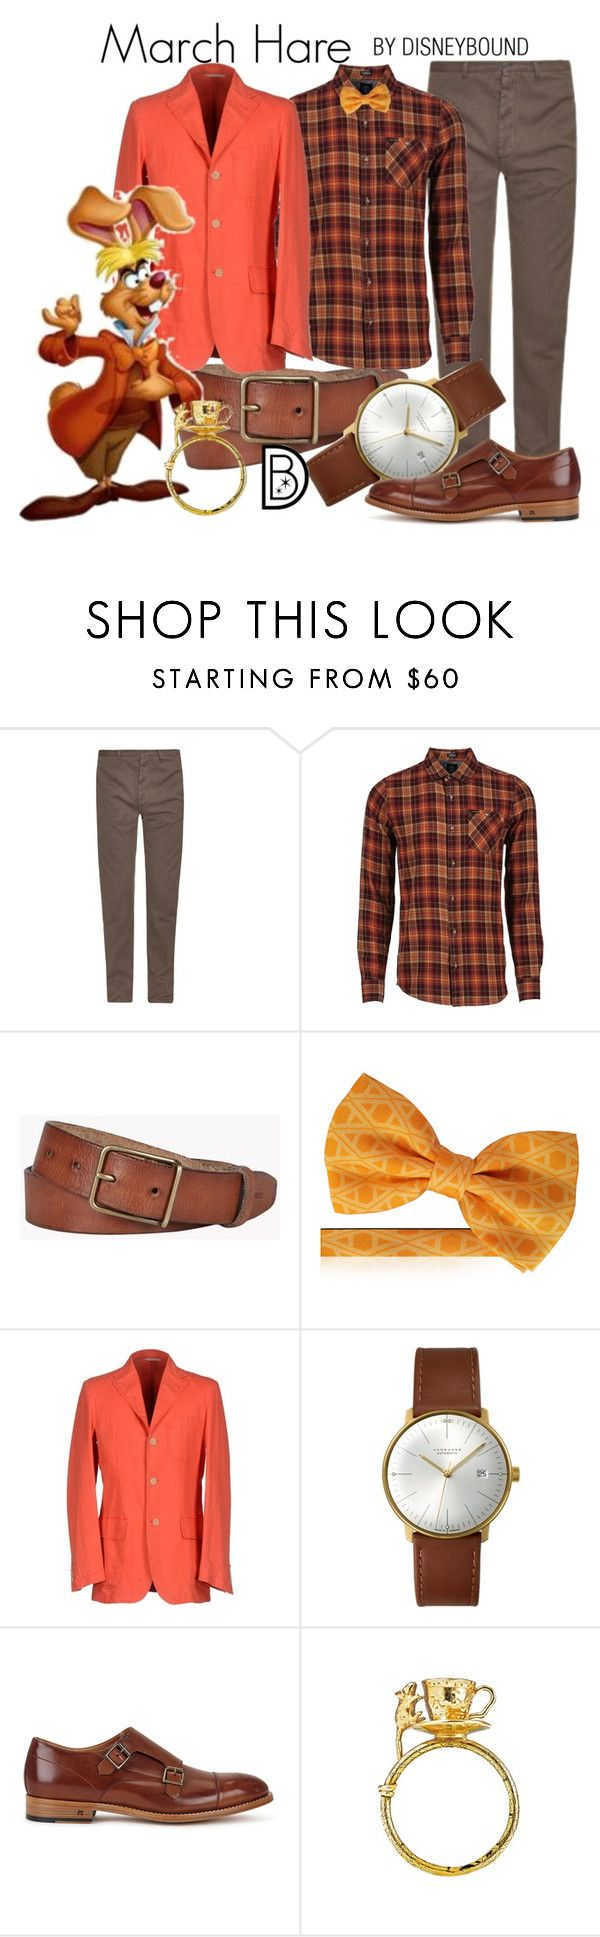 """March Hare"" by leslieakay ❤ liked on Polyvore featuring Massimo Alba, Volcom, Dsquared2, Junghans, Paul Smith, men's fashion, menswear, disney and disneybound"